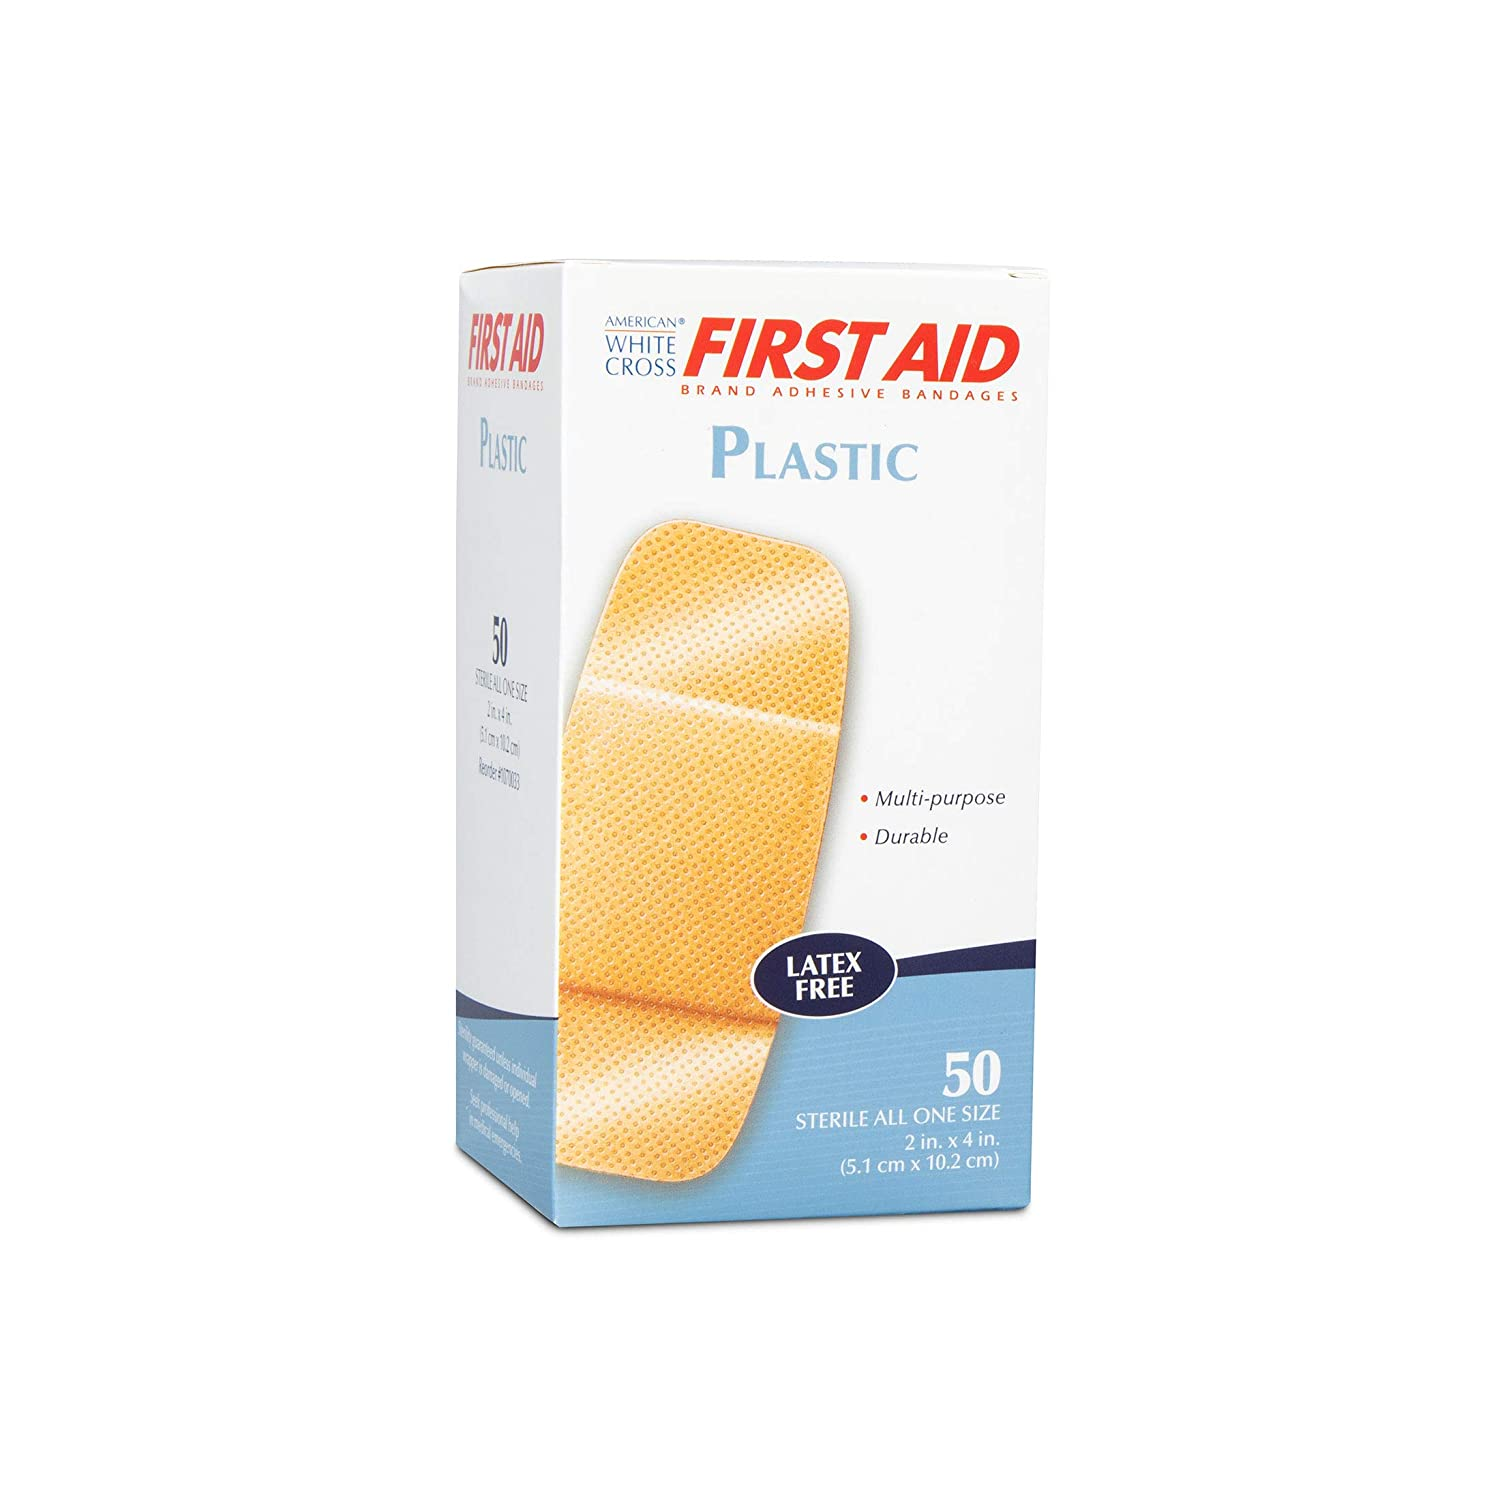 """Details about  /American White Cross Plastic Patch Adhesive Bandage 2/"""" x 4/"""" 100 Count MS20125"""